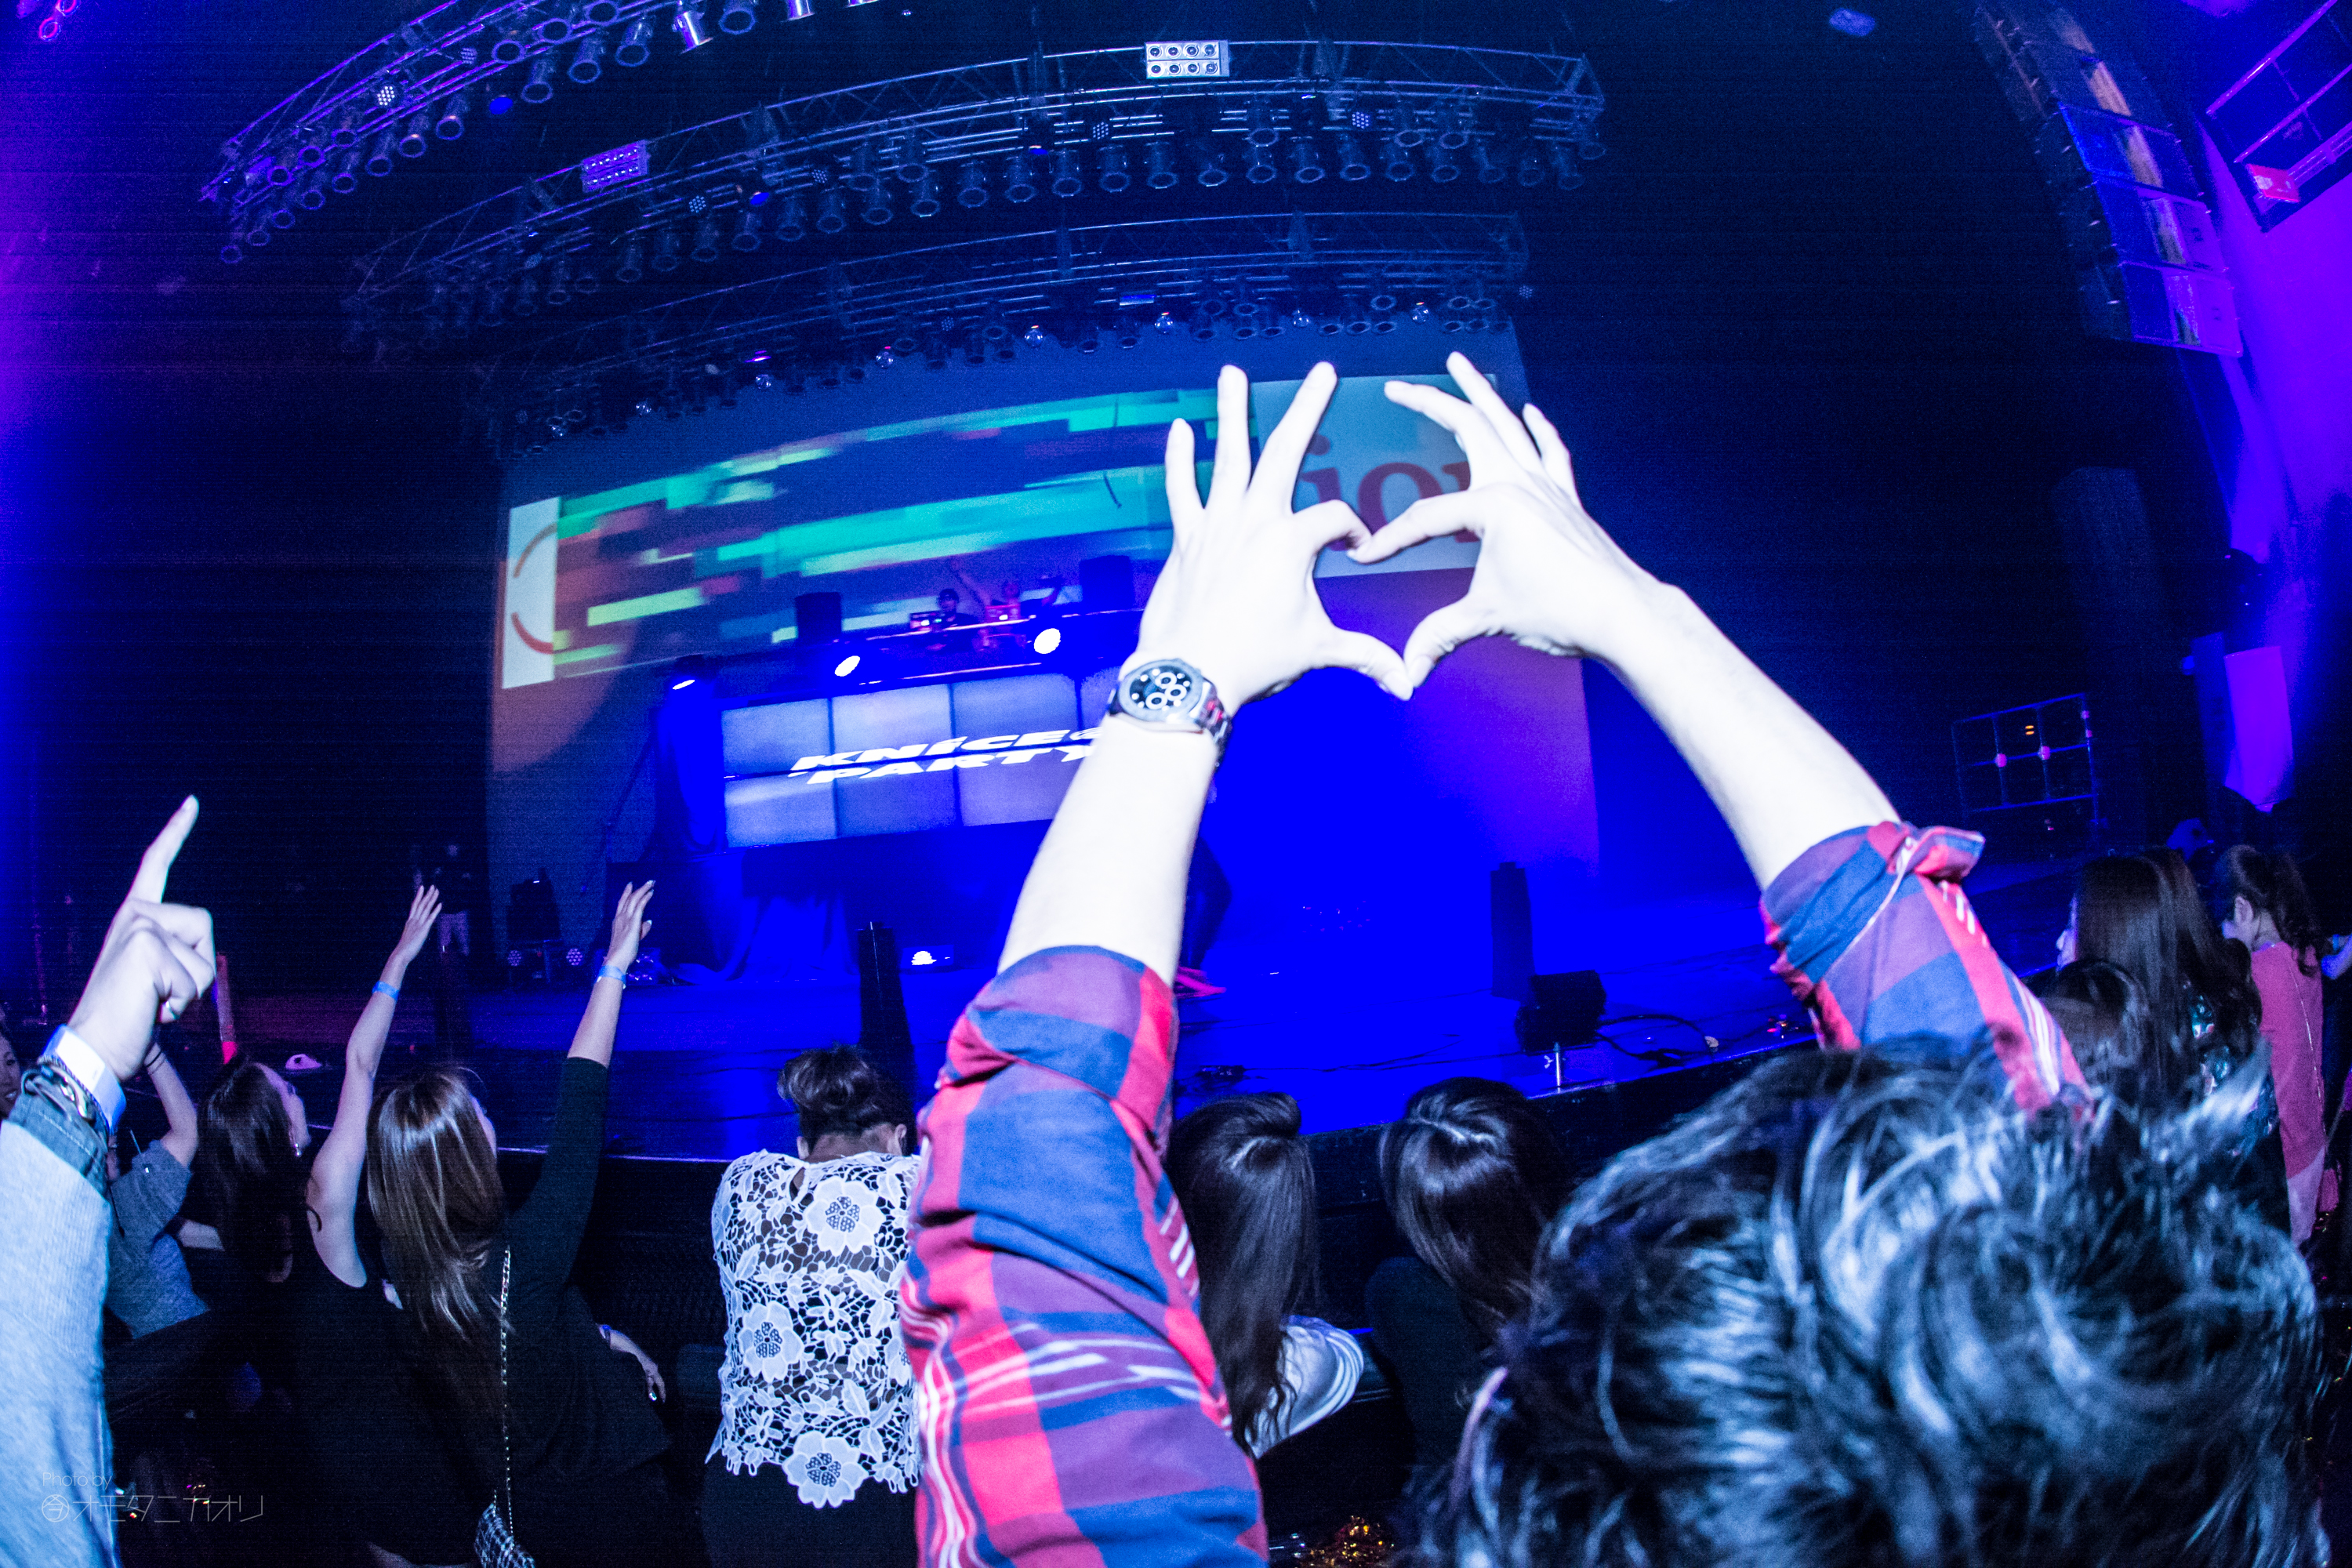 Collaboration _EDM Allnight Festival